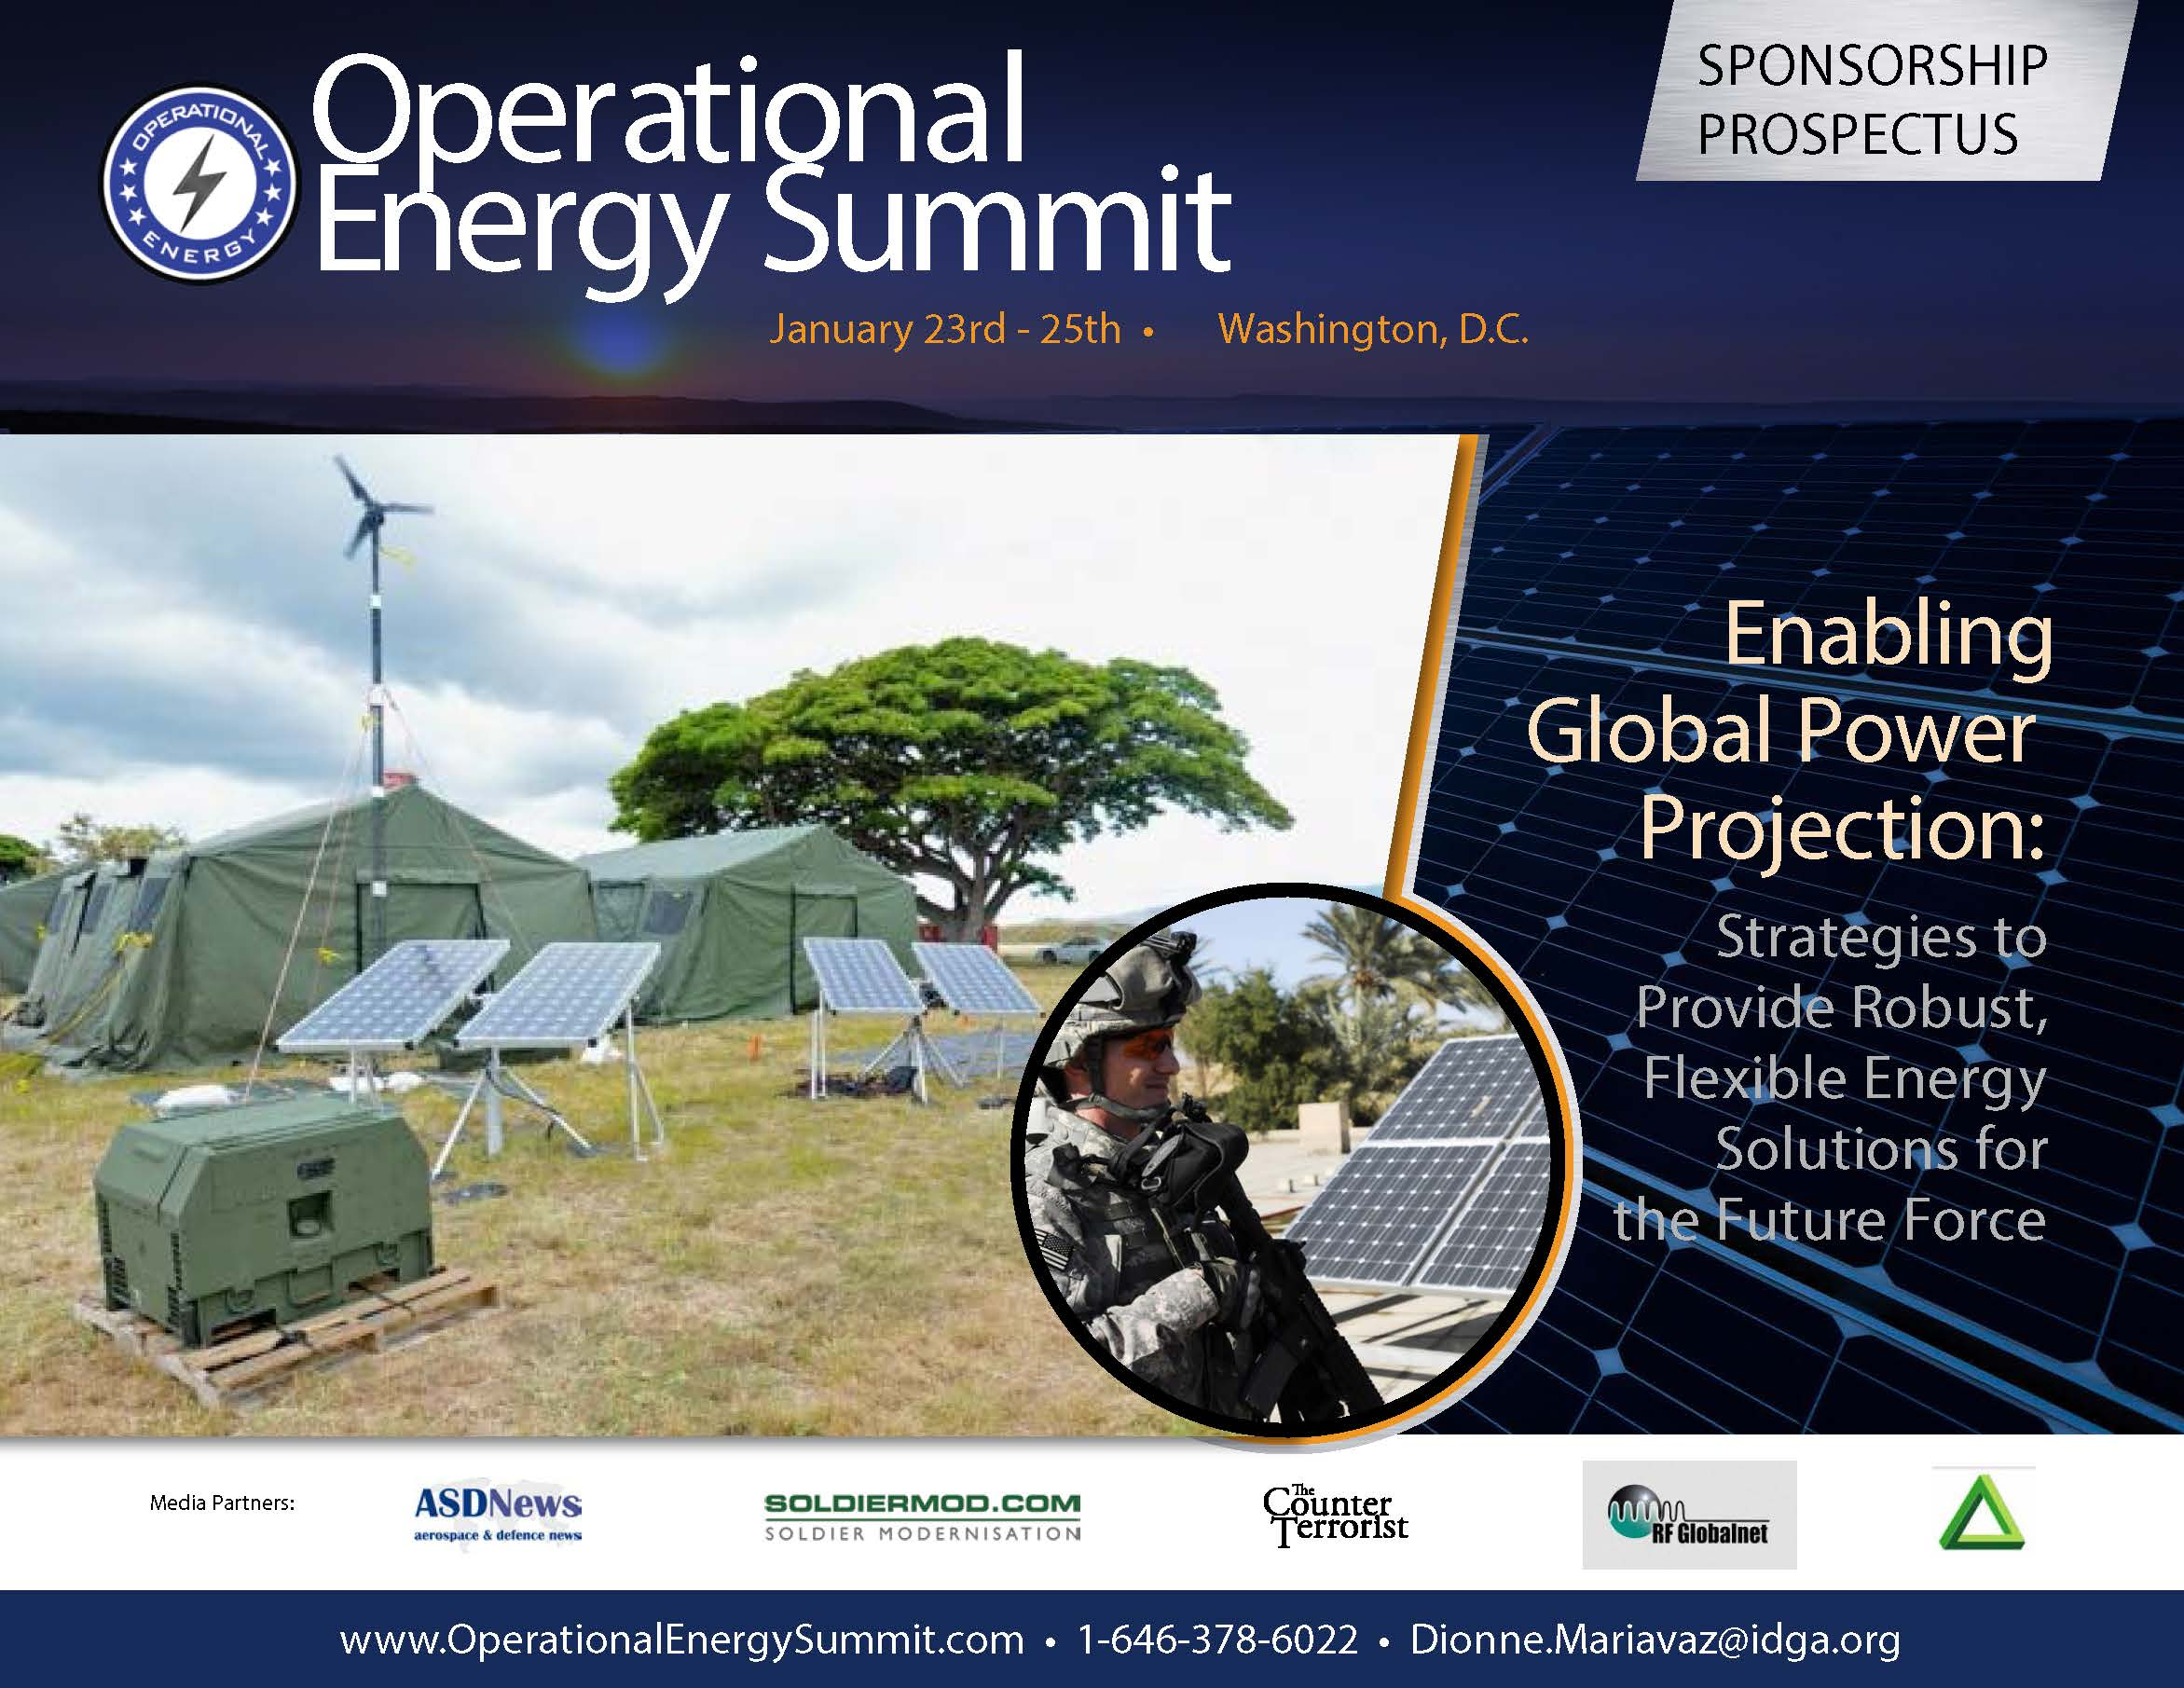 Operational Energy Summit Sponsorship Prospectus